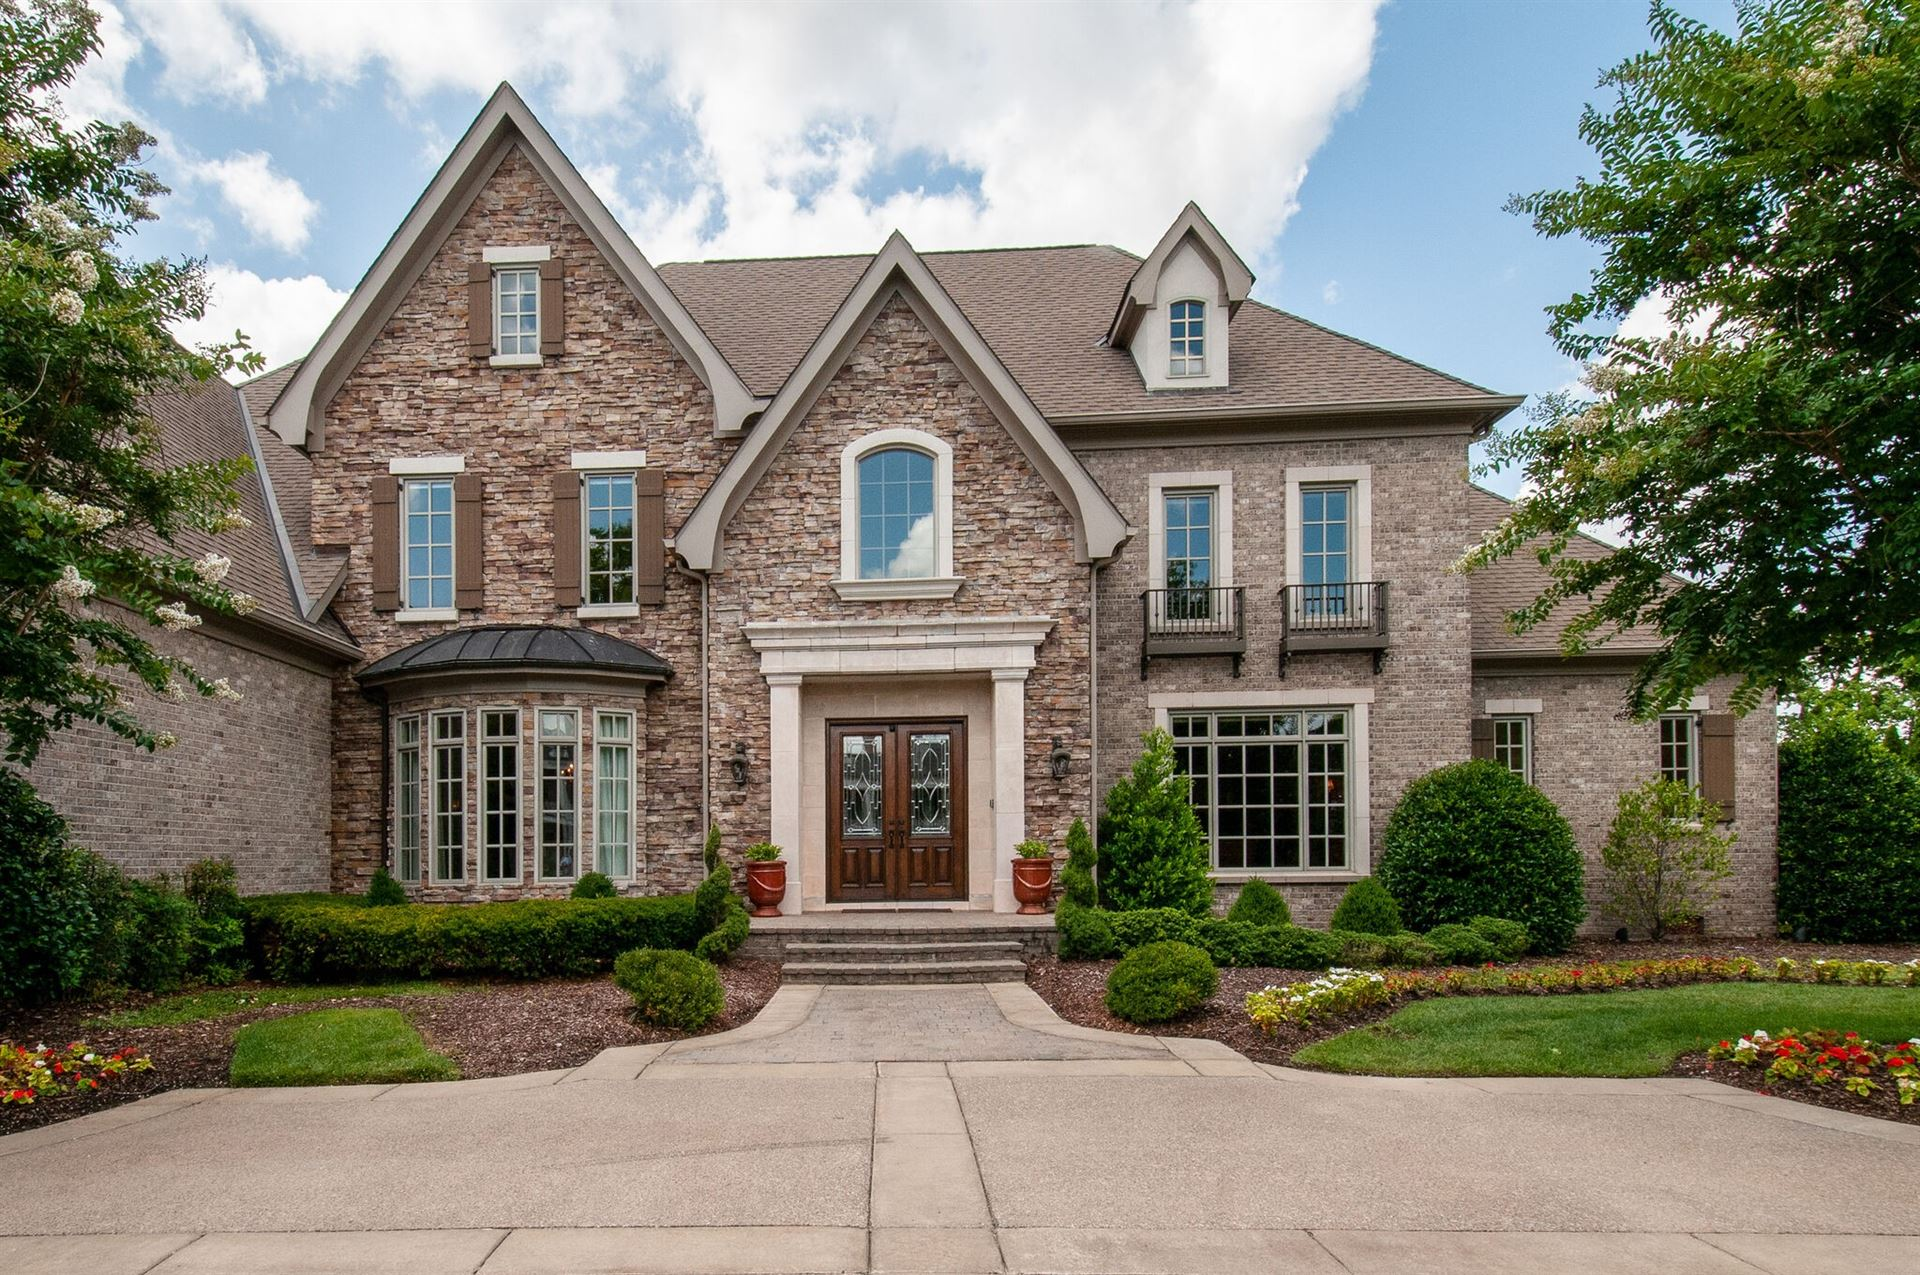 Photo of 31 Governors Way, Brentwood, TN 37027 (MLS # 2272007)